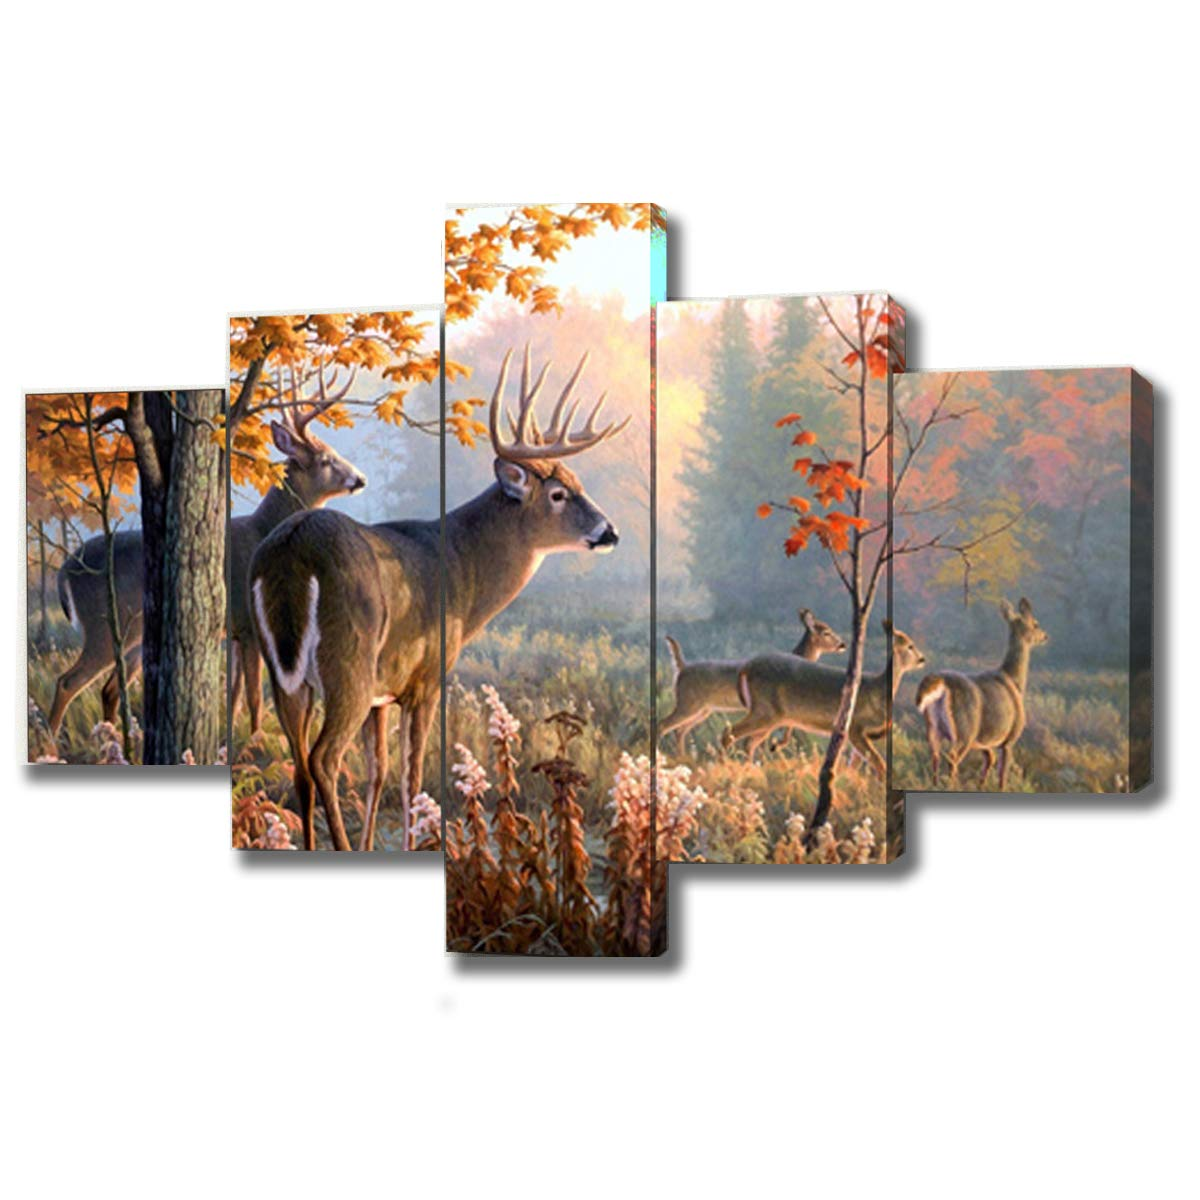 DXYJUYI Elks Modern Animals Landscape Artwork 5 Panels Giclee Canvas Prints Forest Pictures Paintings on Stretched and Framed Canvas Wall Art for Living Room Bedroom Home Decor